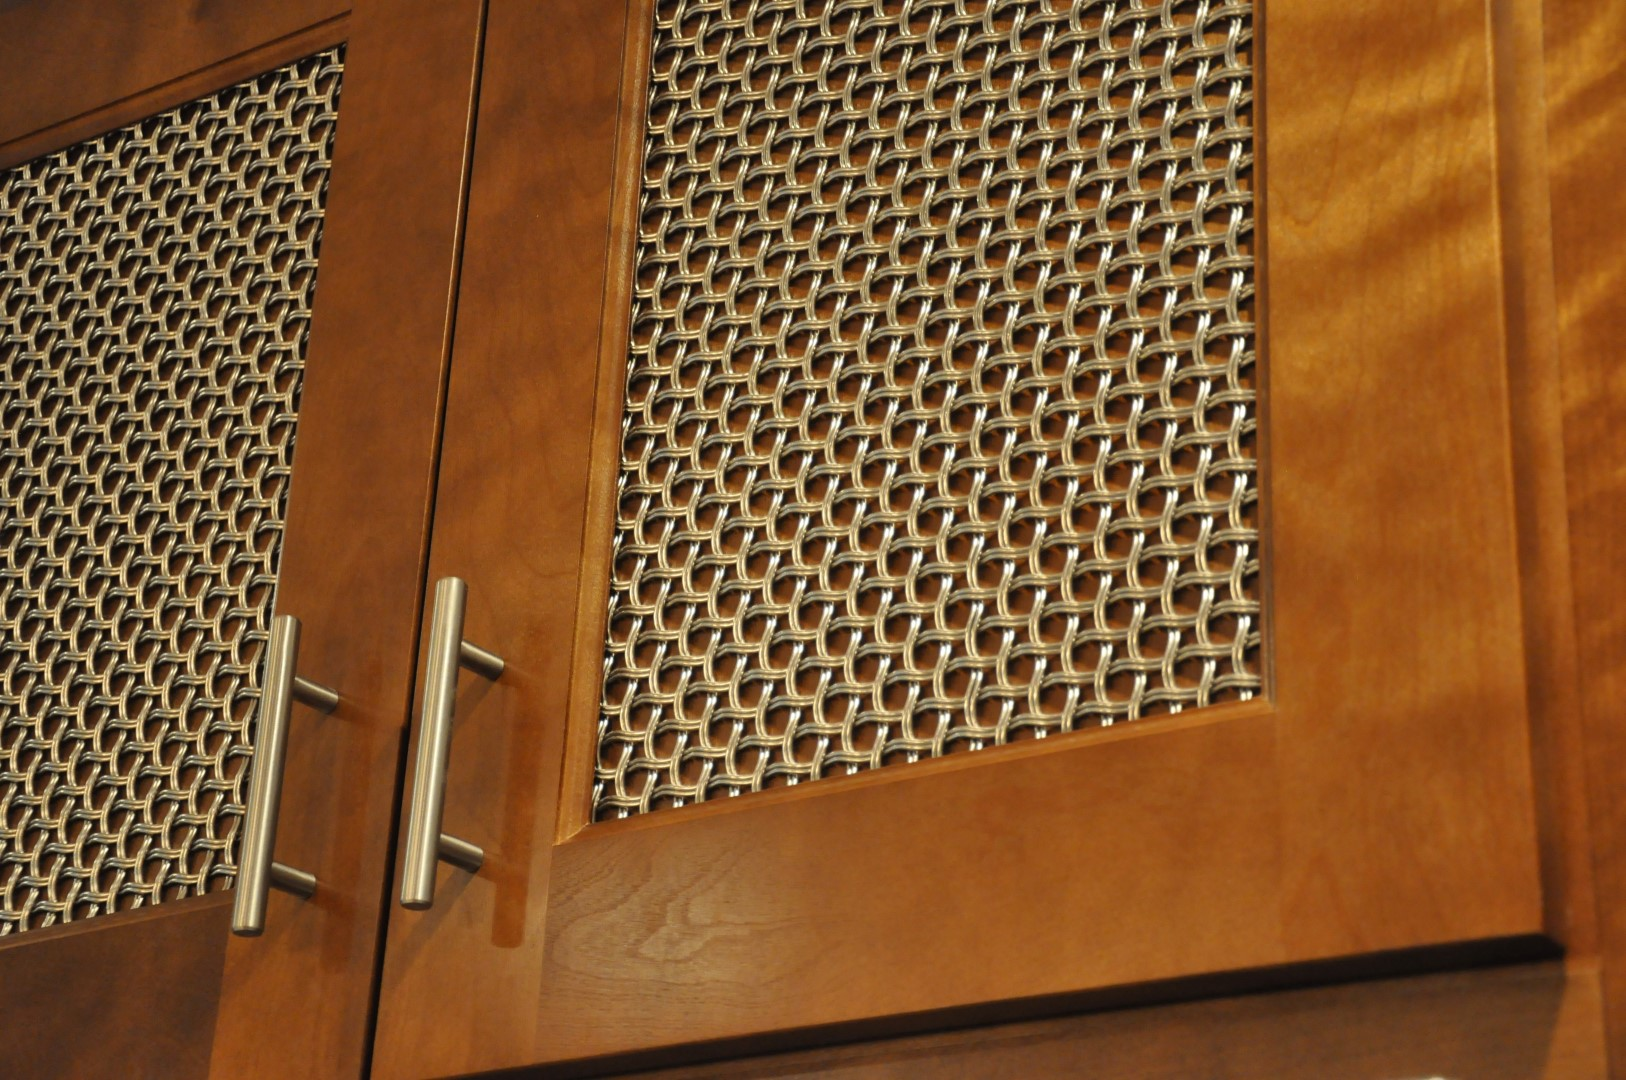 Woven wire mesh over wood inserts conceals the items within the cabinets for a neat appearance.